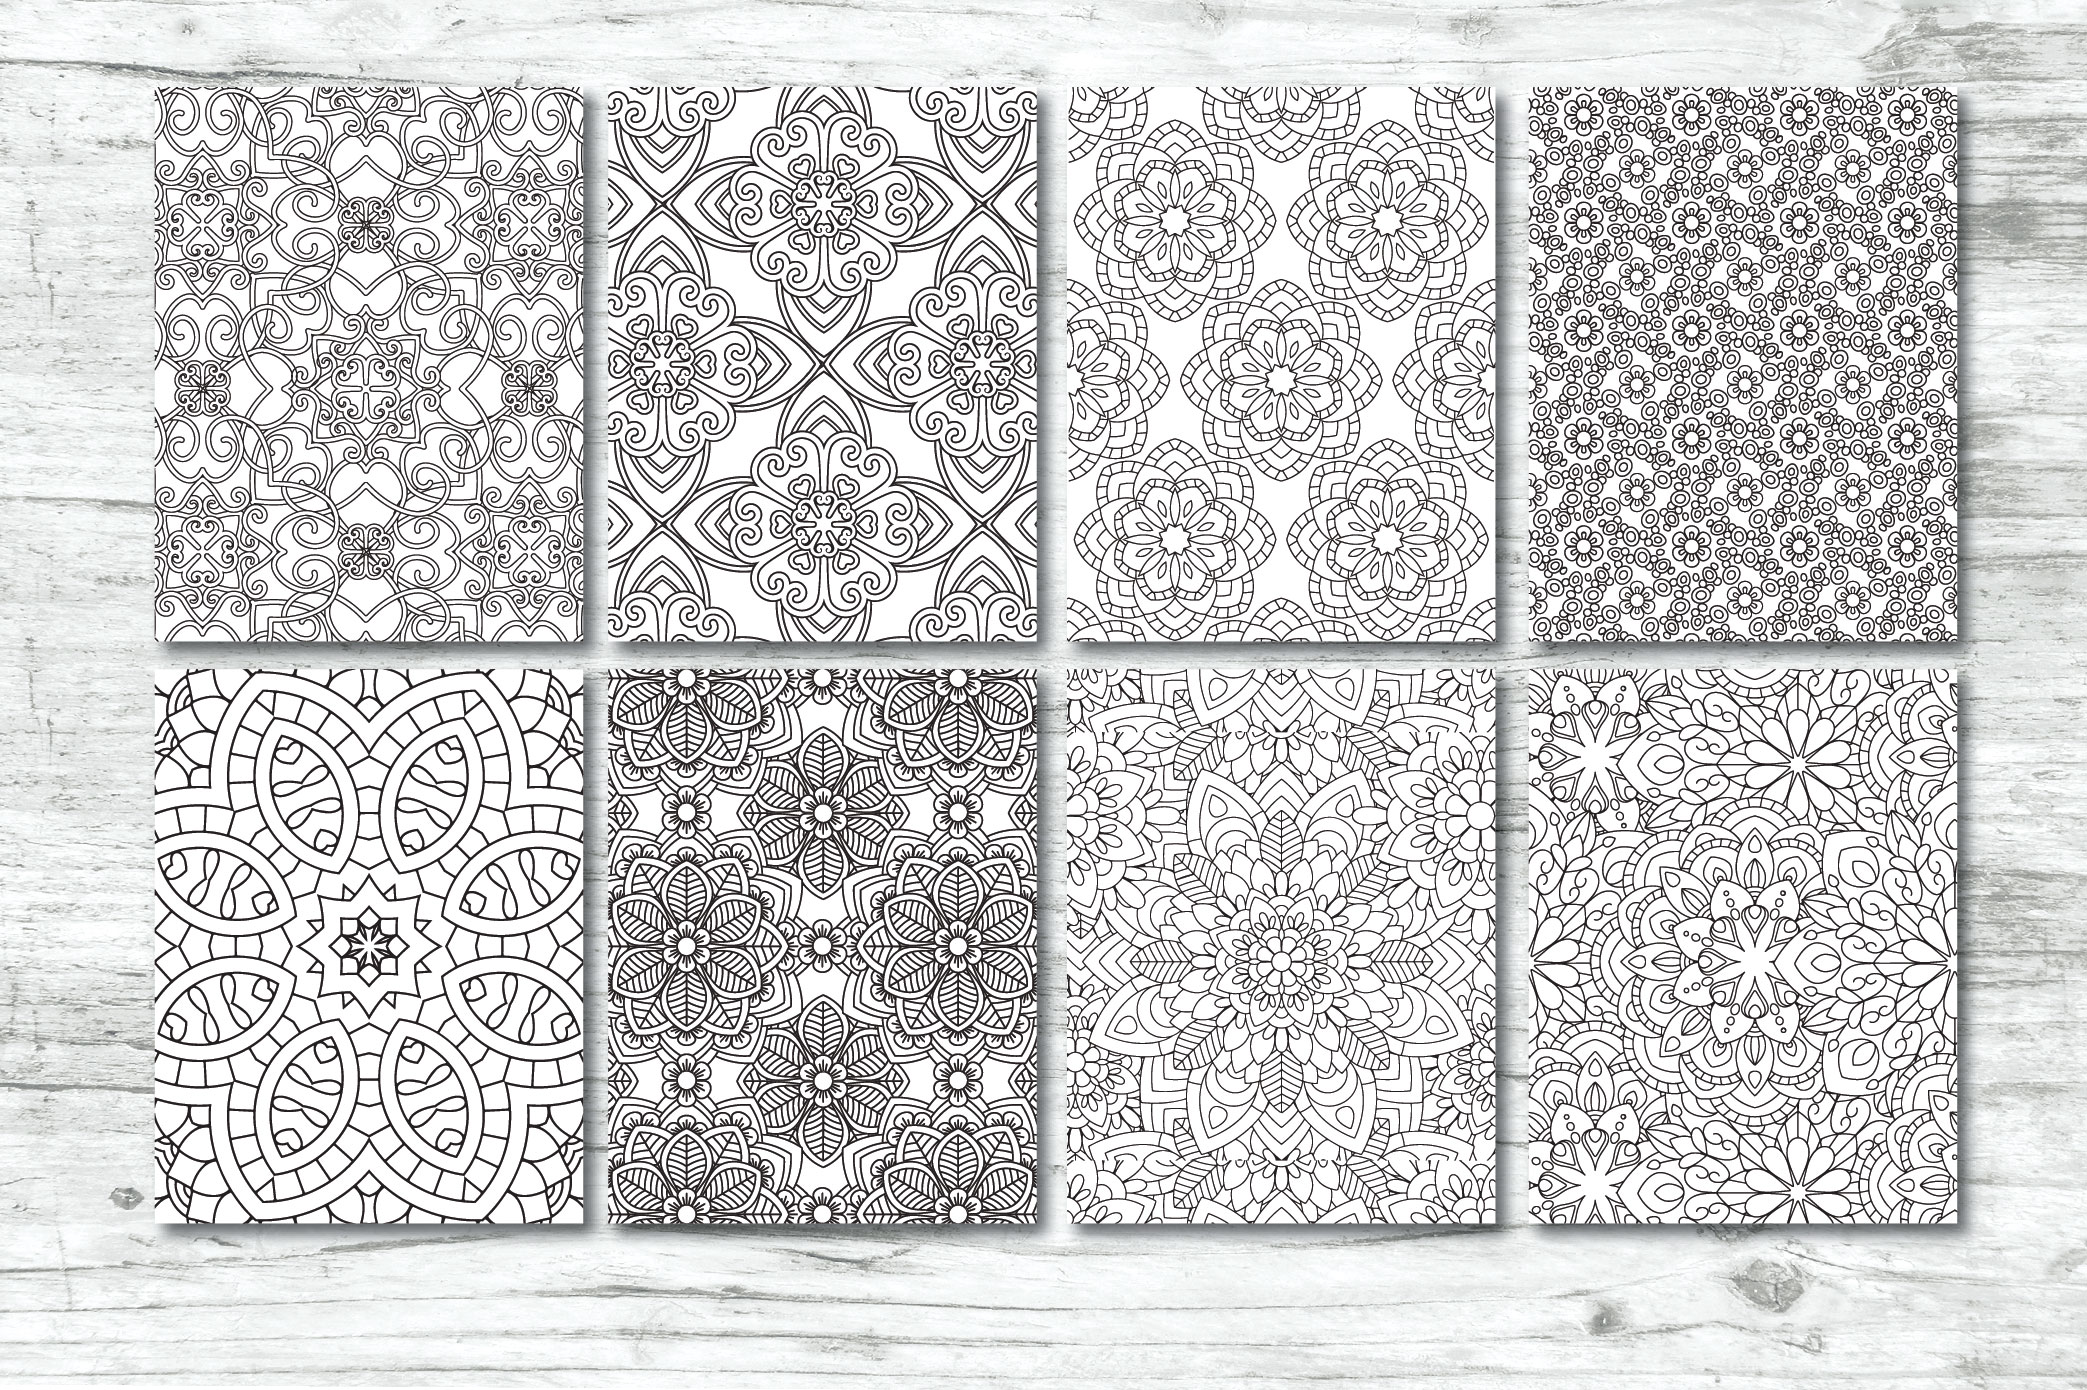 50 Geometric Coloring Pages example image 7